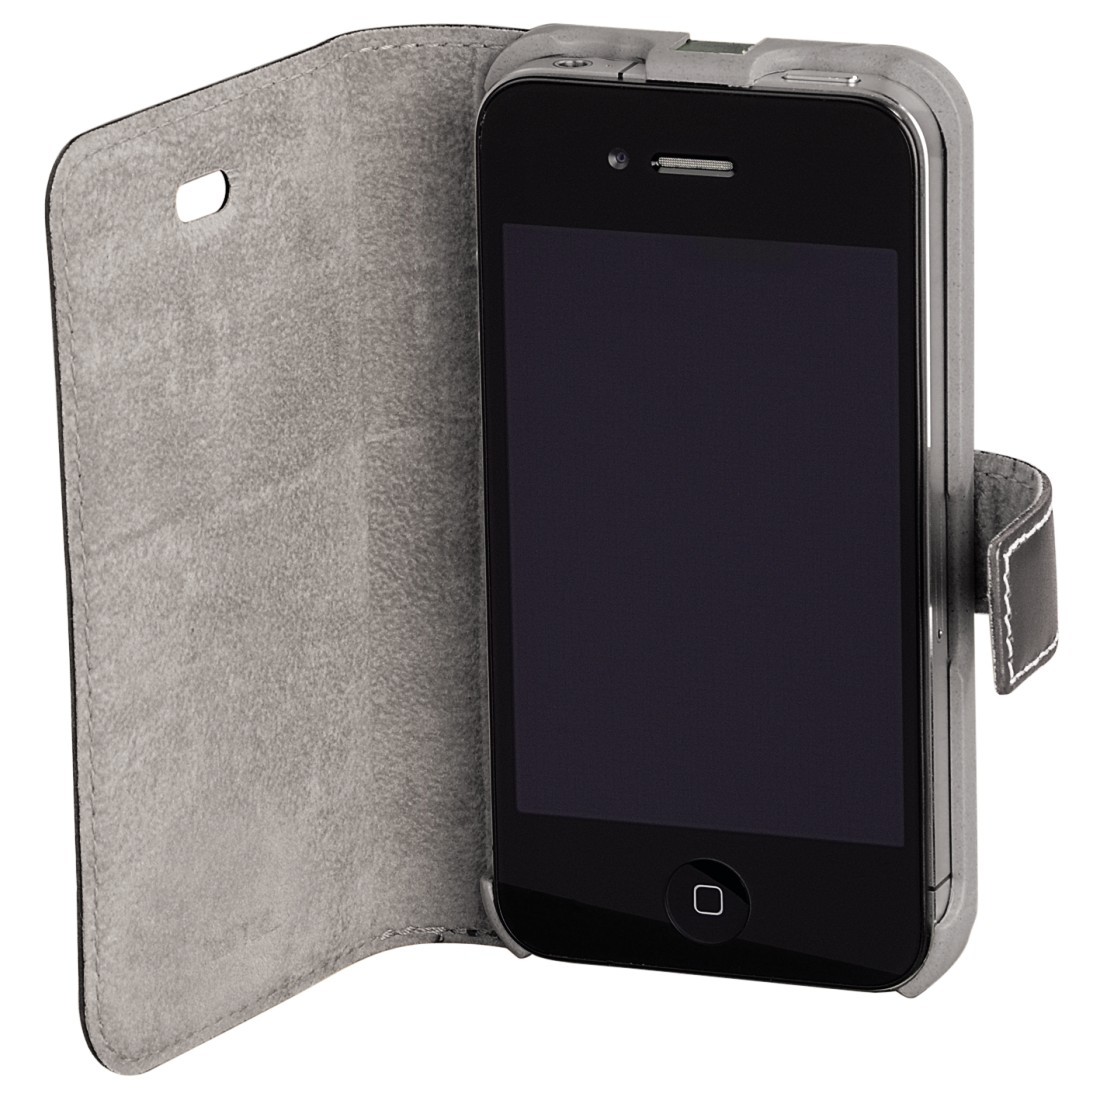 awx High-Res Appliance - Hama, Liquid Wood Mob. Phone Wind. Case f. iPhone 4/4S, hor., l.grey/d.grey